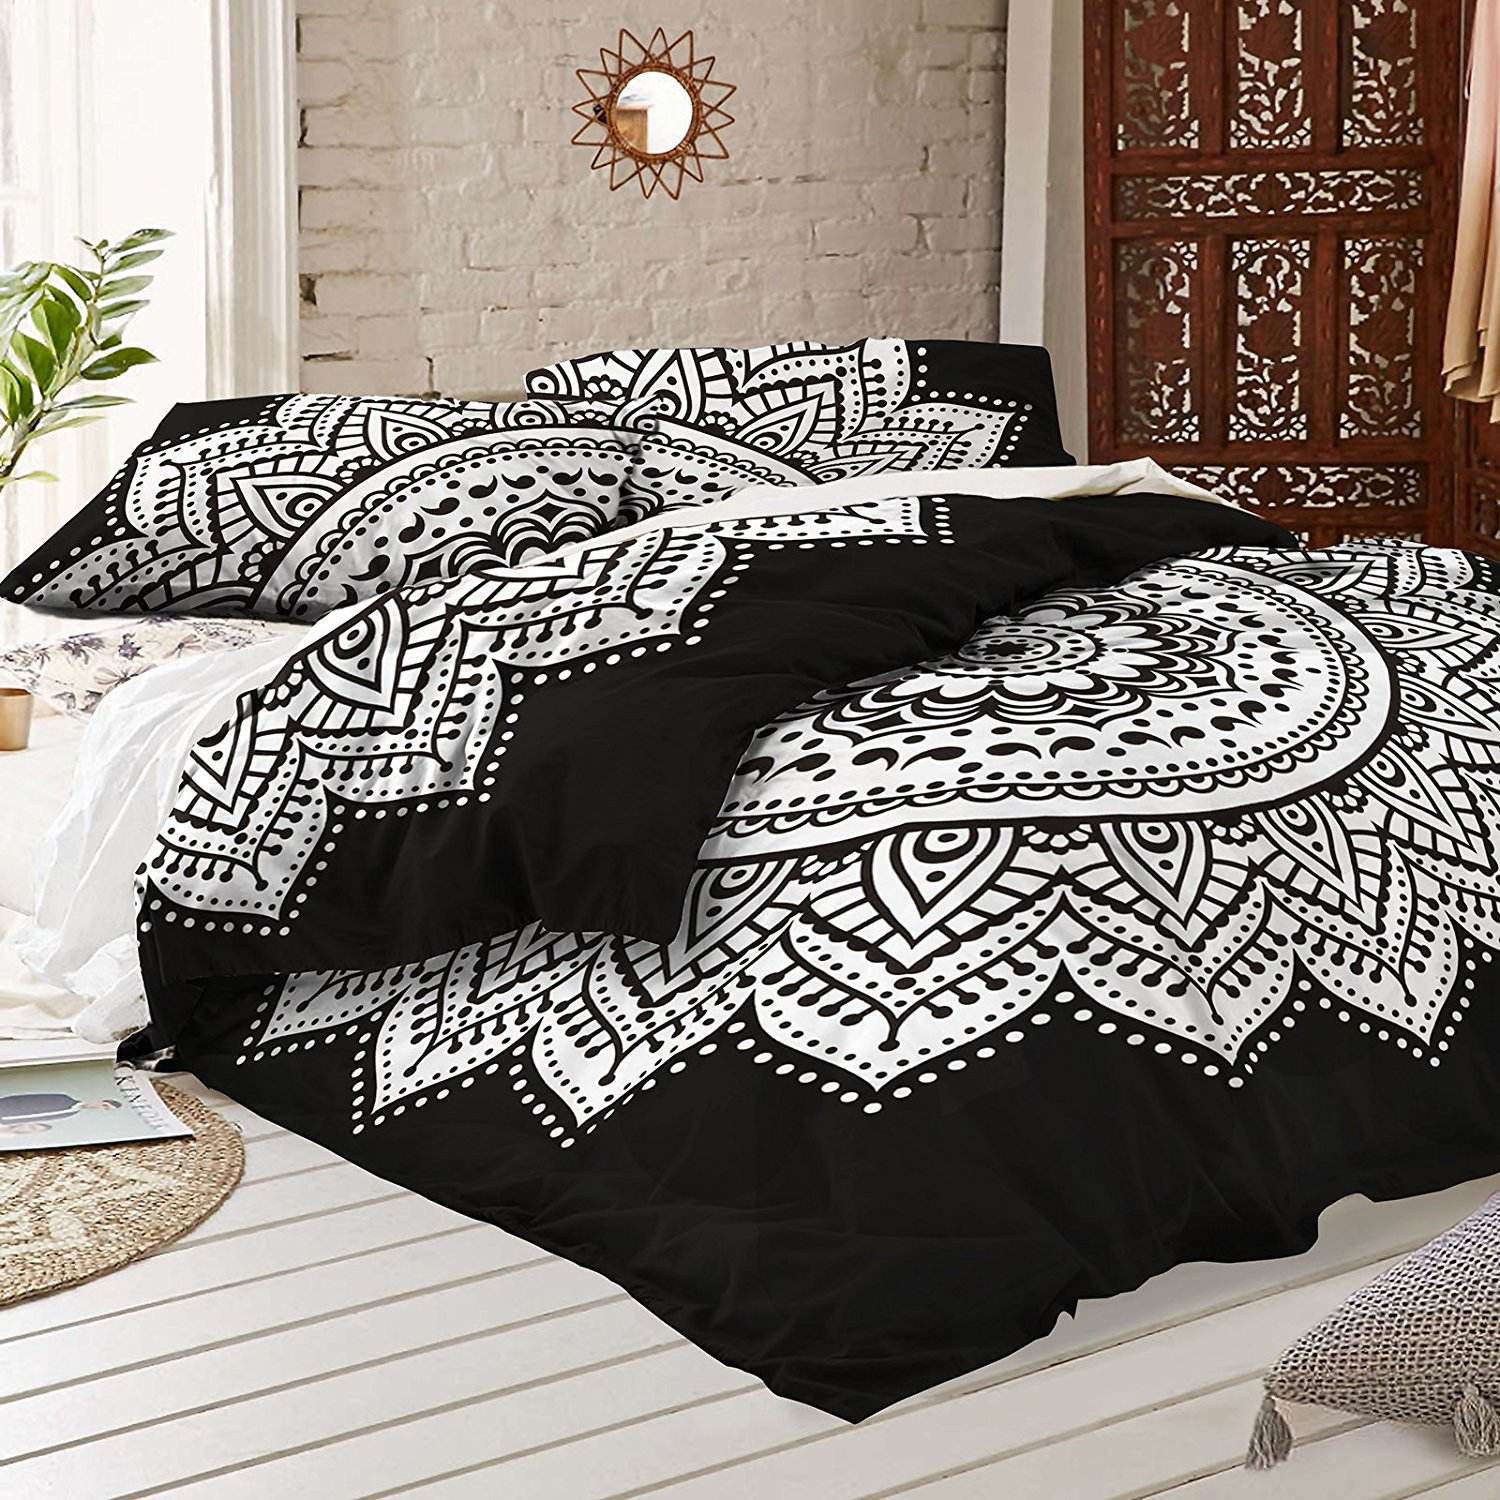 Black And White Duvet Cover For Your Bedroom Cool Ideas